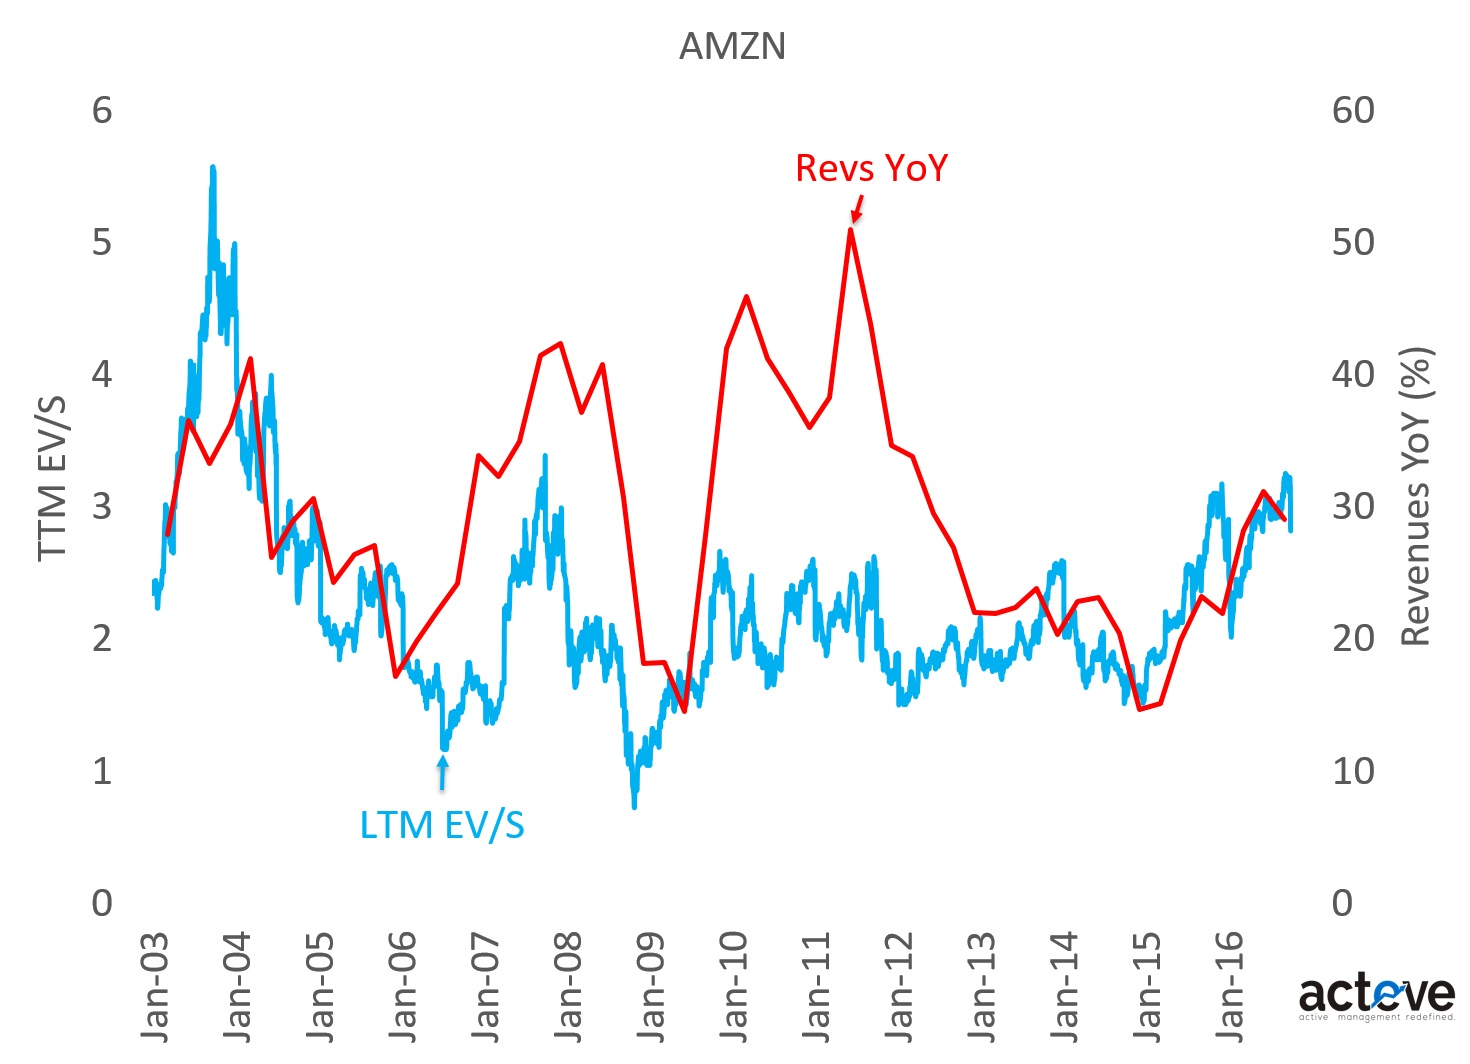 AMZN EV/S vs. YoY Revenues